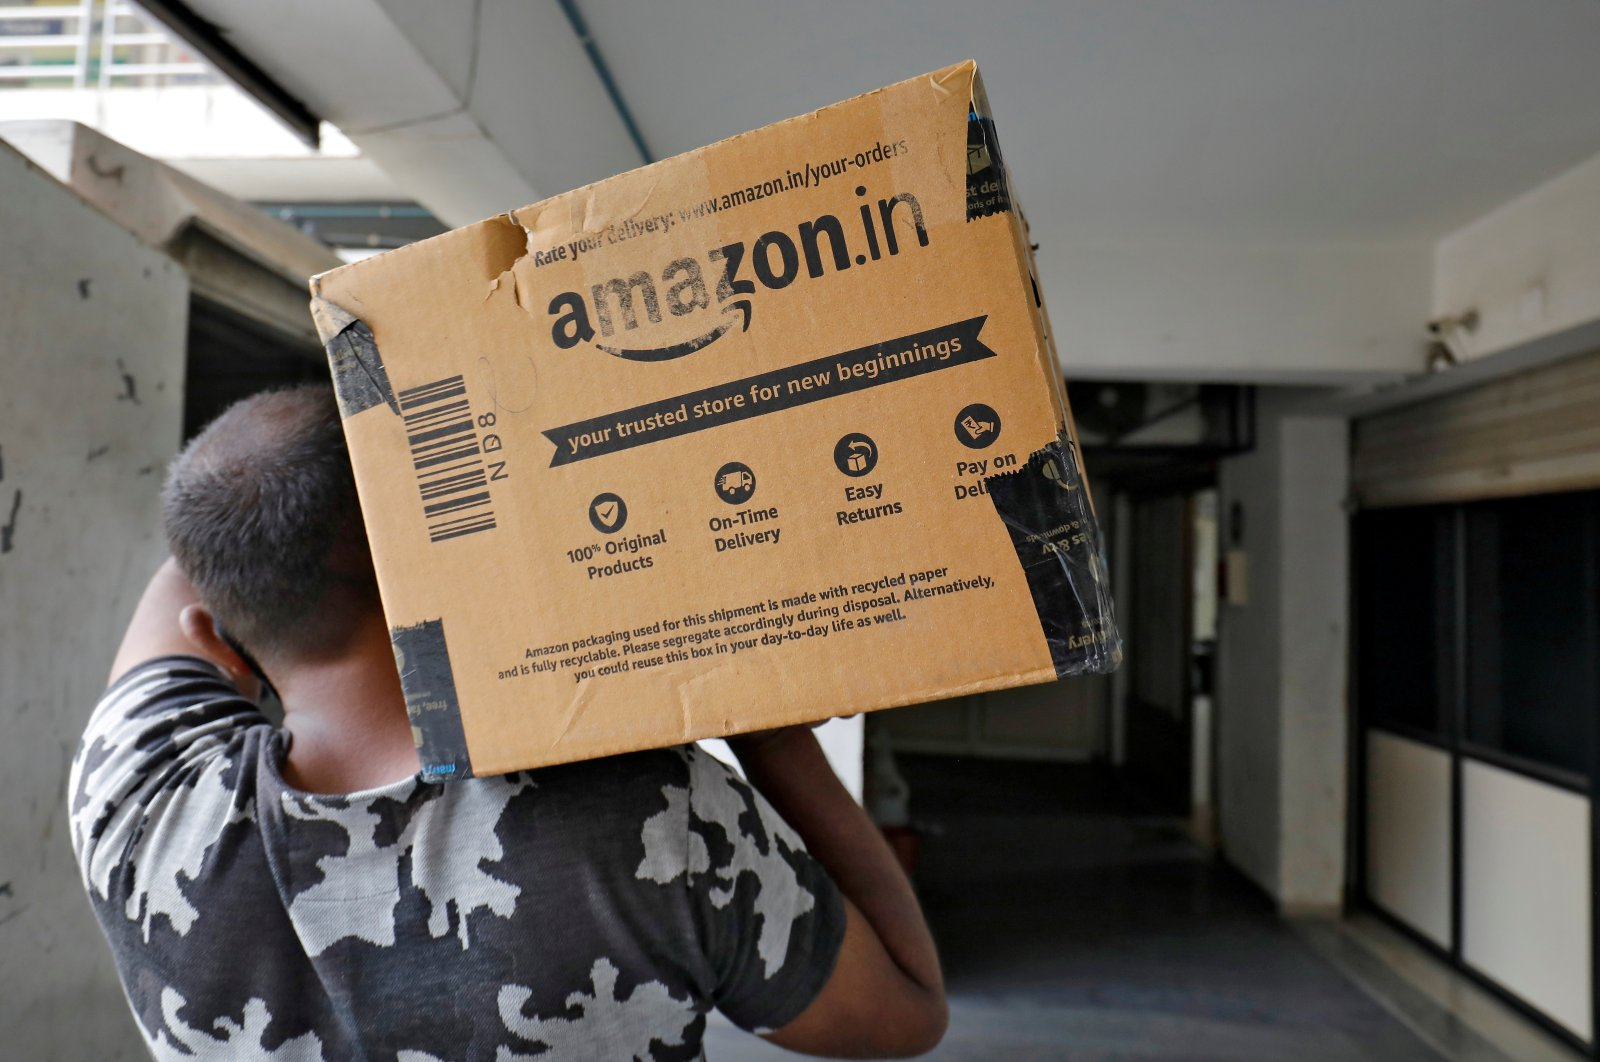 A delivery worker carries an Amazon package to deliver it to a customer at a residential apartment in Ahmedabad, India, March 17, 2021. (Reuters Photo)